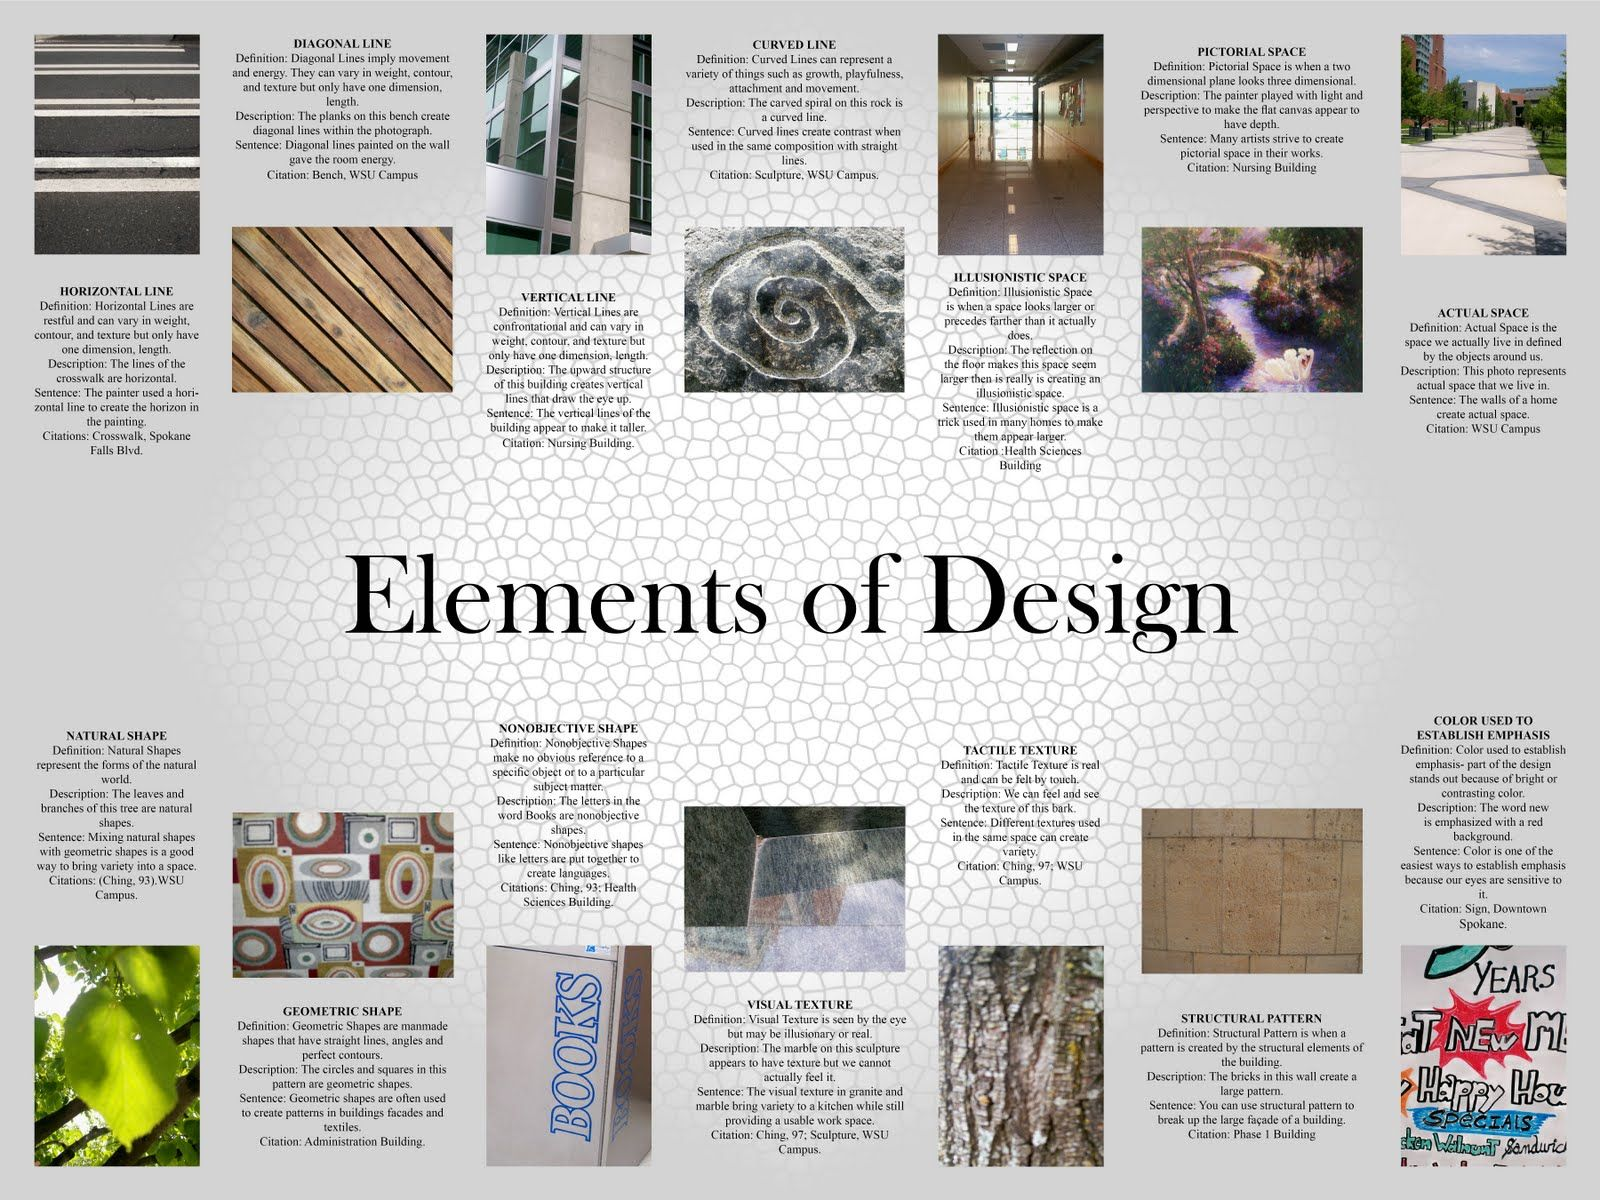 Elements And Principles Of Design Interior Design Principles Principles Of Design Elements And Principles